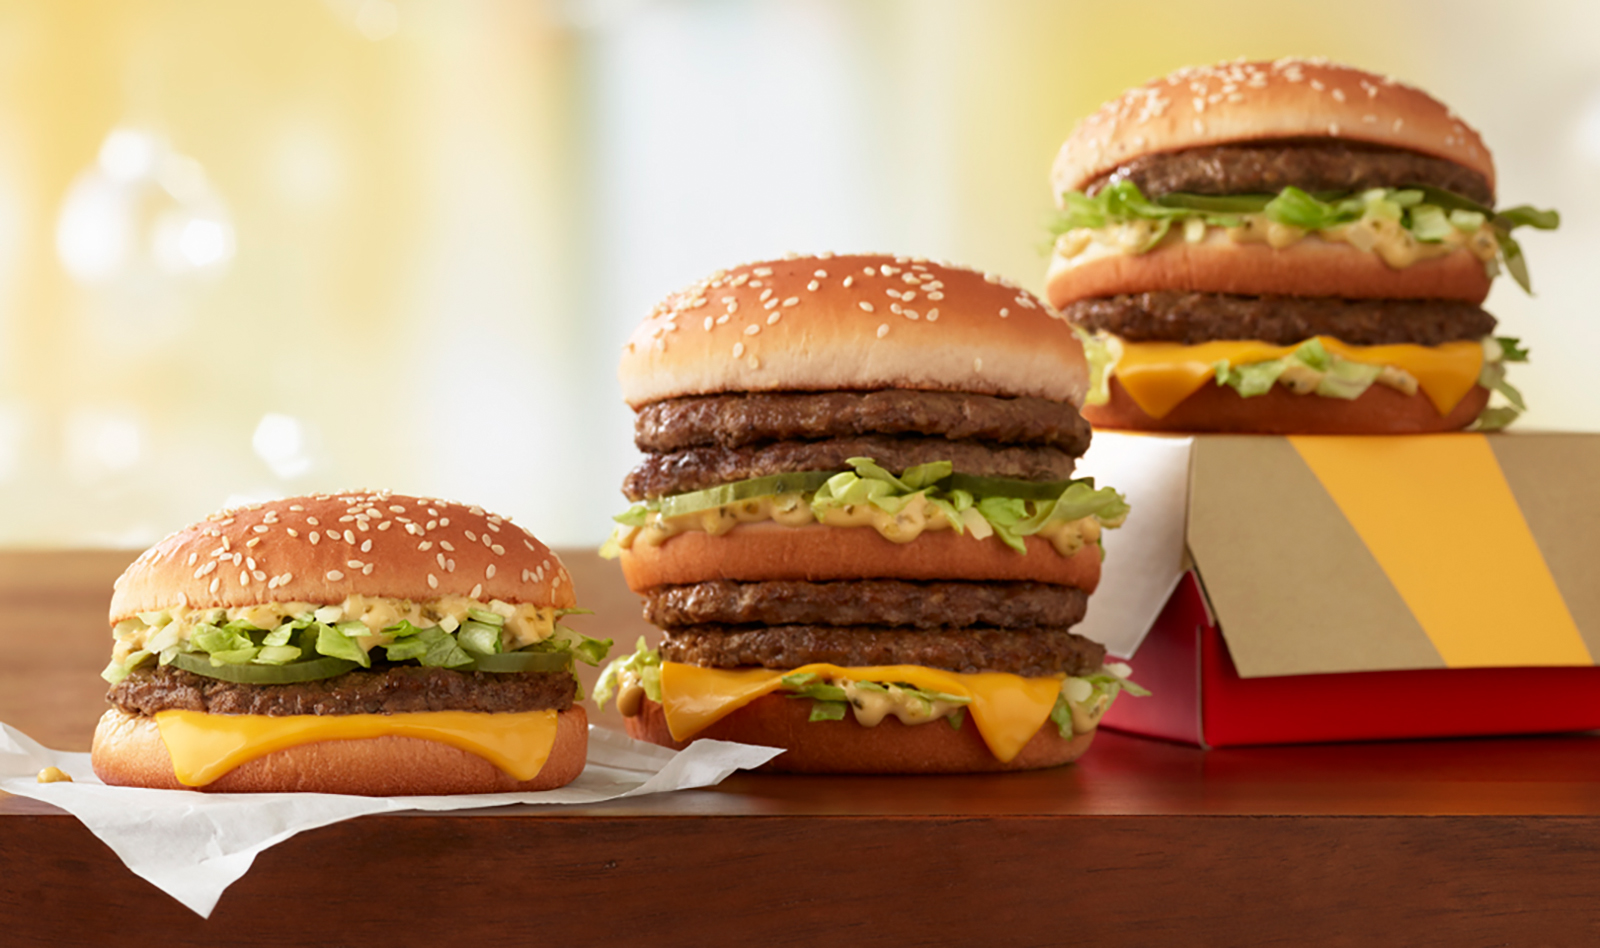 McDonald's will serve a Little Mac (left) and a Double Big Mac (right) beginning on Wednesday, April 11. (McDonald's via CNN Wire)